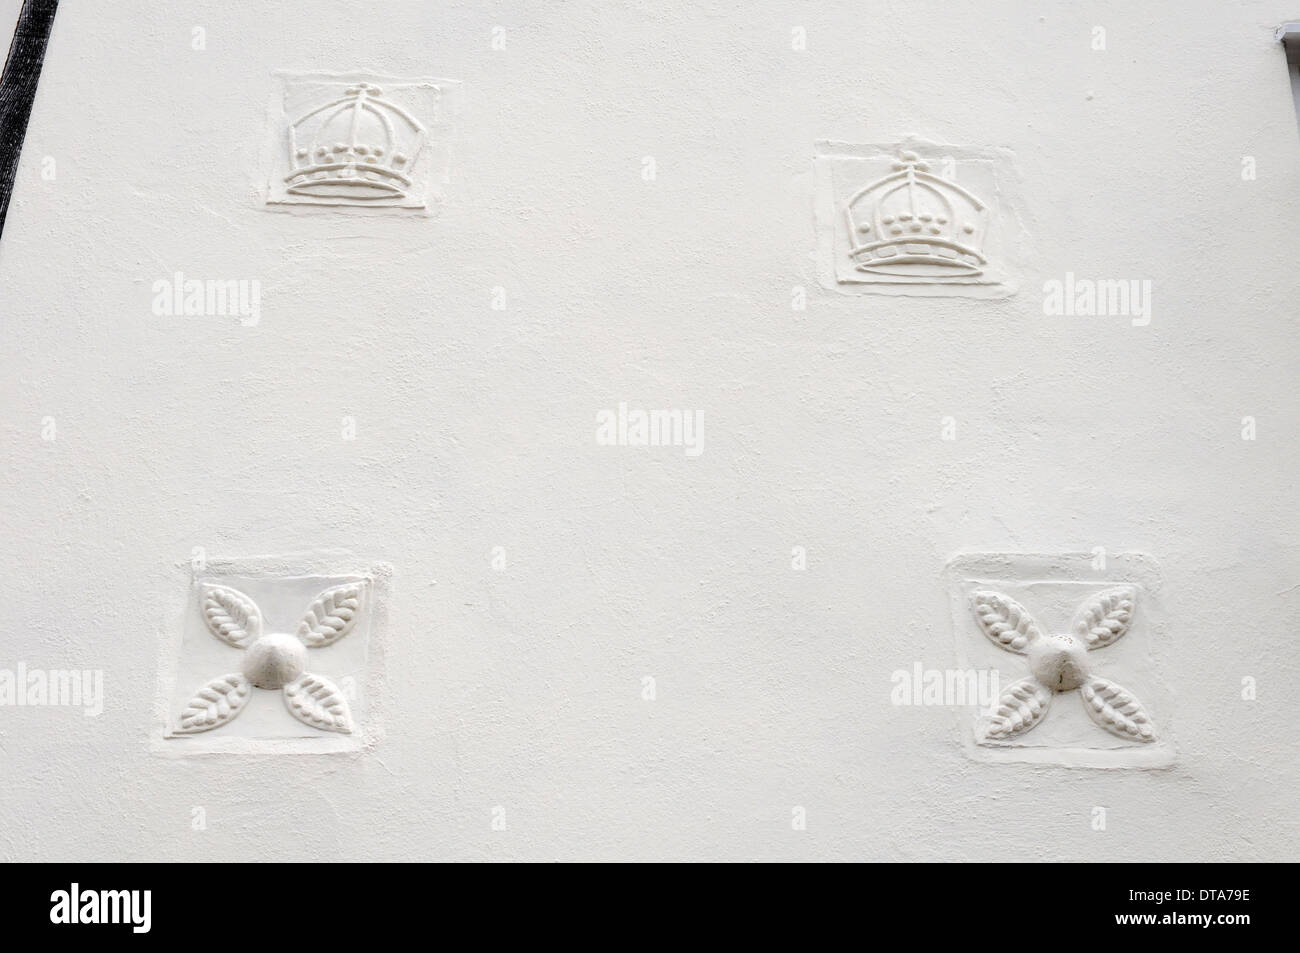 Marks, badges in a wall, Lavenham Suffolk. - Stock Image